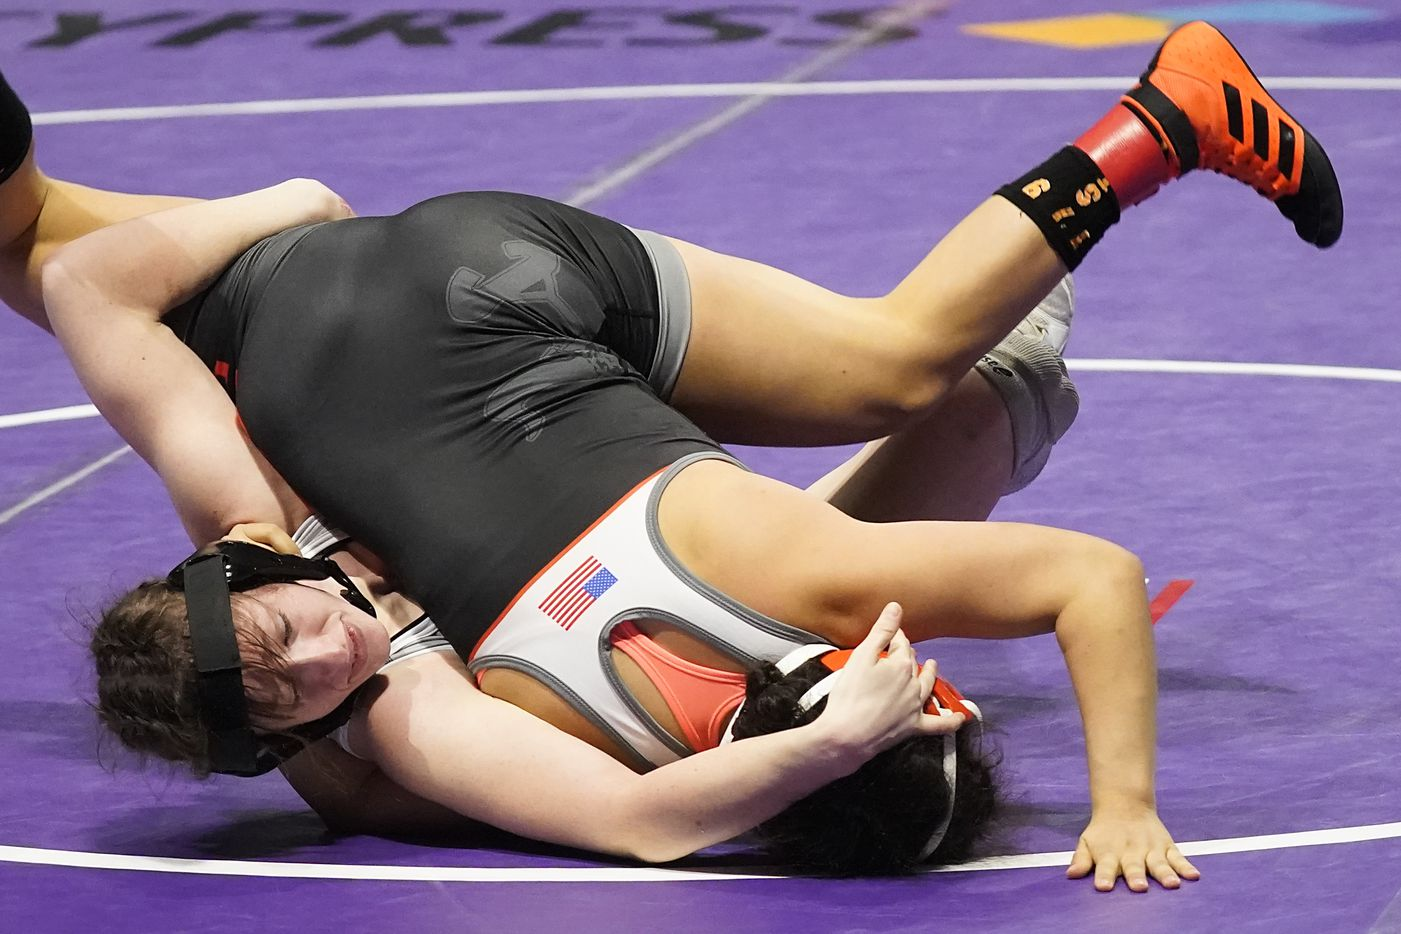 Tabitha Wood of Frisco Independence (left) wrestles Tatiana Garcia of Amarillo Caprock for the 5A girls 119-pound championship during the UIL State Wrestling tournament at the Berry Center on Friday, April 23, 2021, in Cypress, Texas.